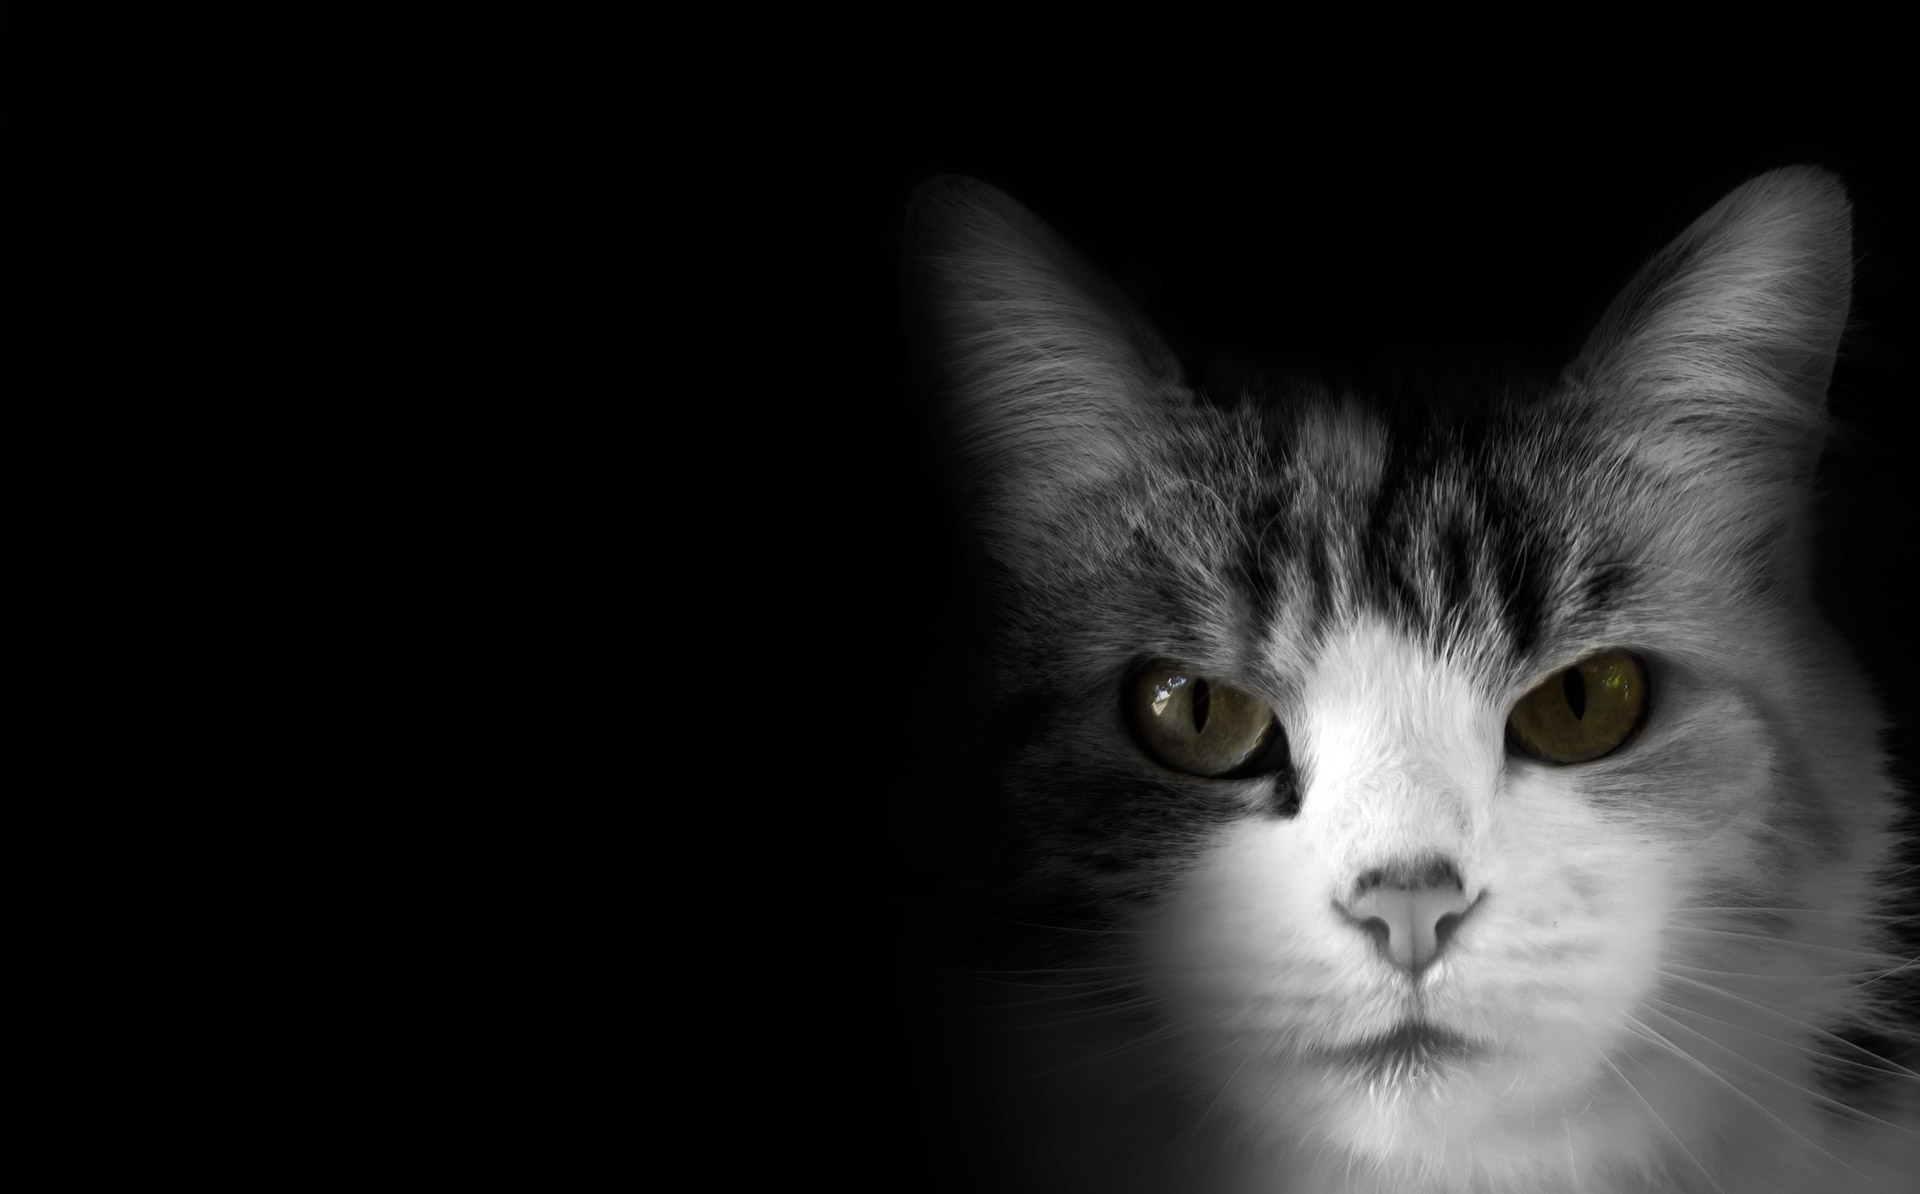 Cat On Black Background Free Stock Photo - Public Domain Pictures